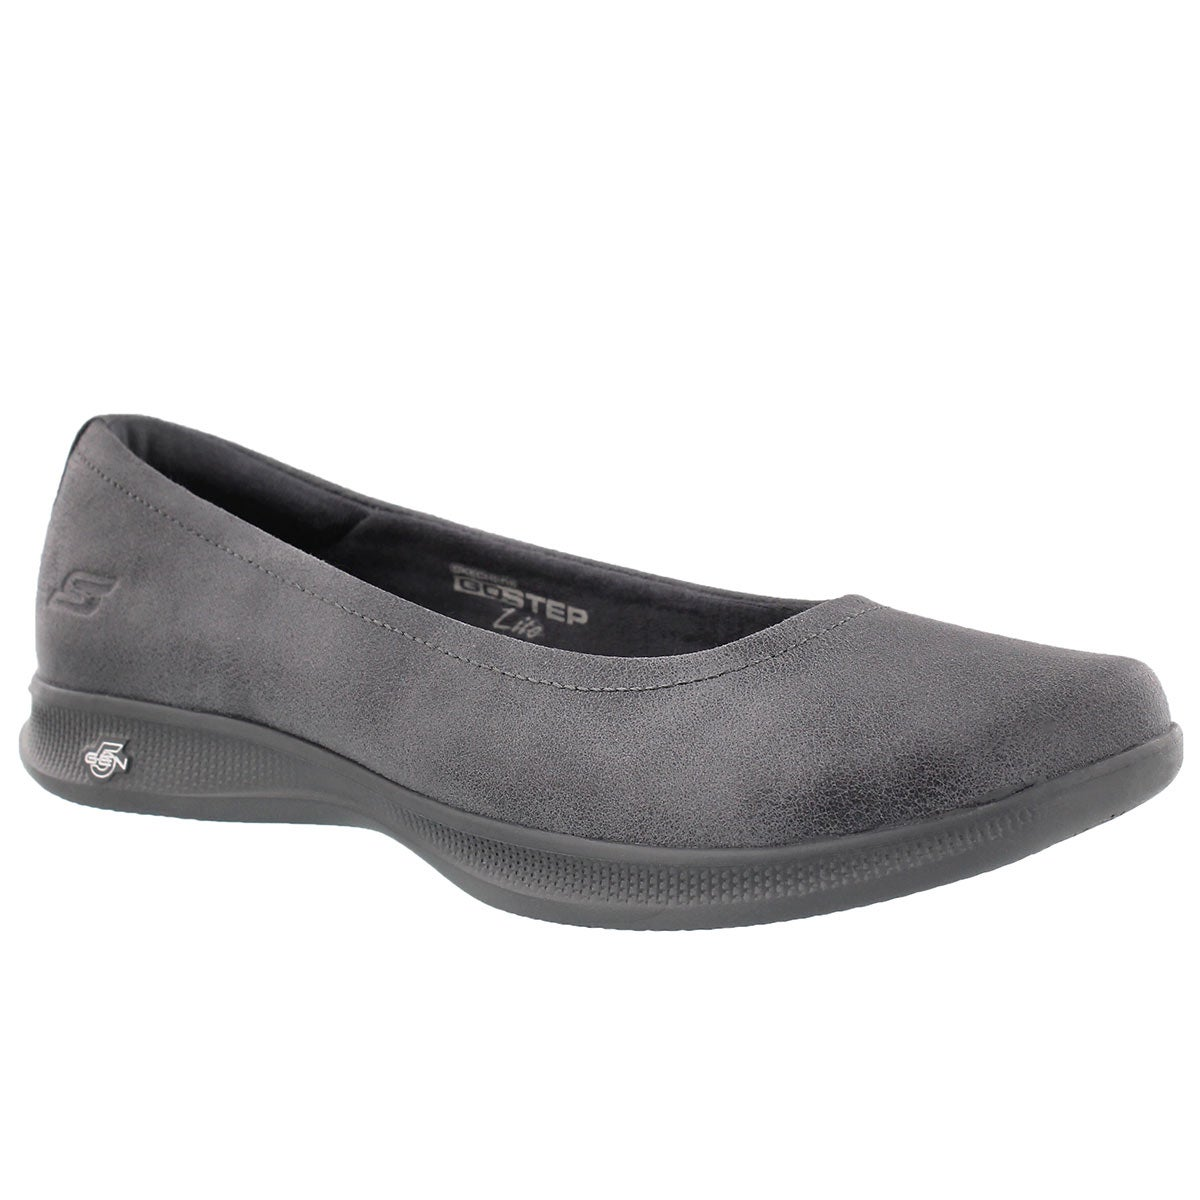 Women's GOstep LITE charcoal casual flats